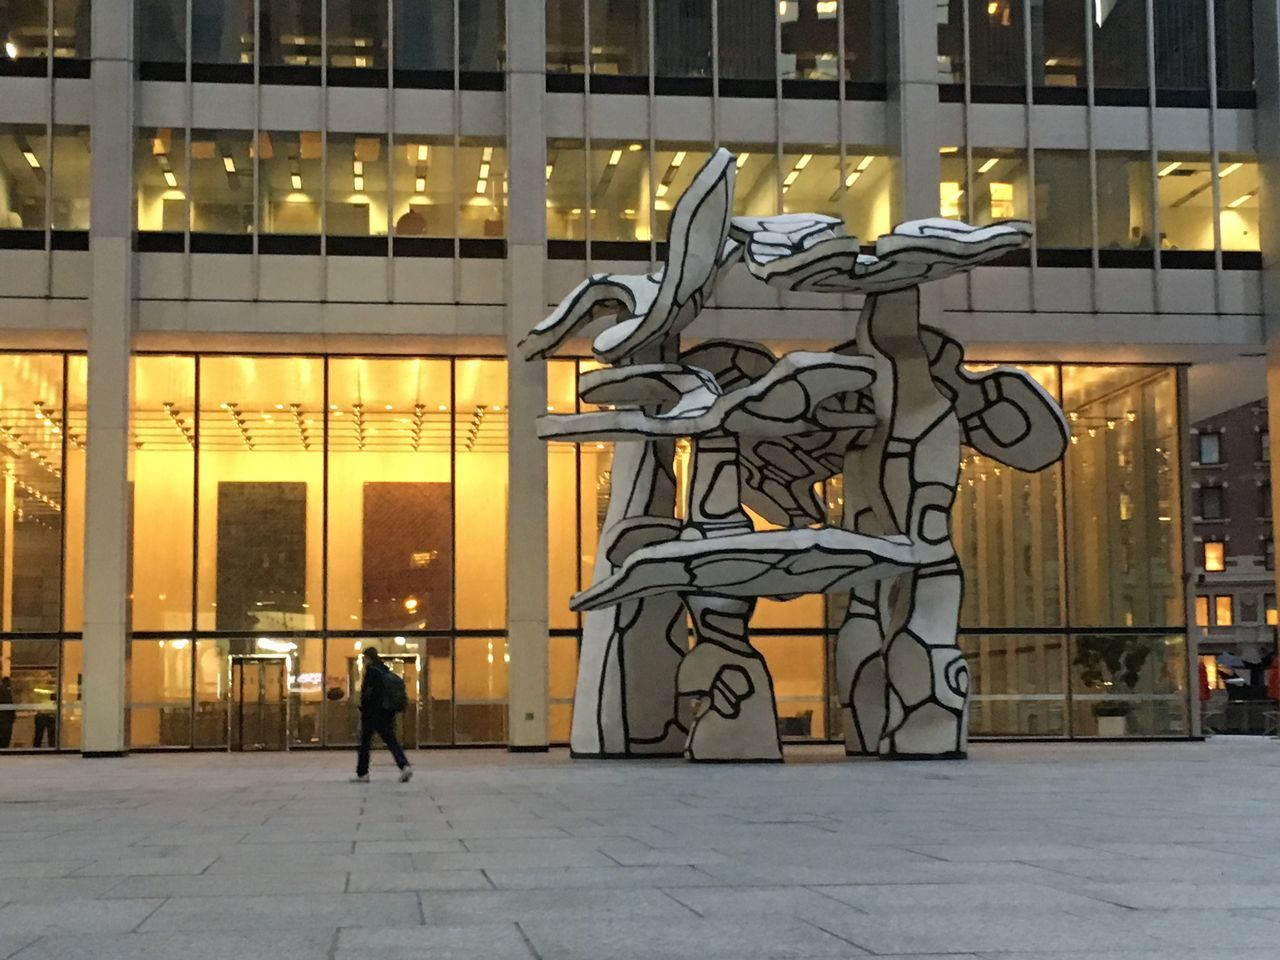 Dubuffet Architecture Art Built Structure Walking Building Exterior New York City New York Full Length City Lifestyles Illuminated Creativity Night City Life Outdoors Orange Color In Front Of Footpath Architectural Feature Architectural Column Urban Geometry